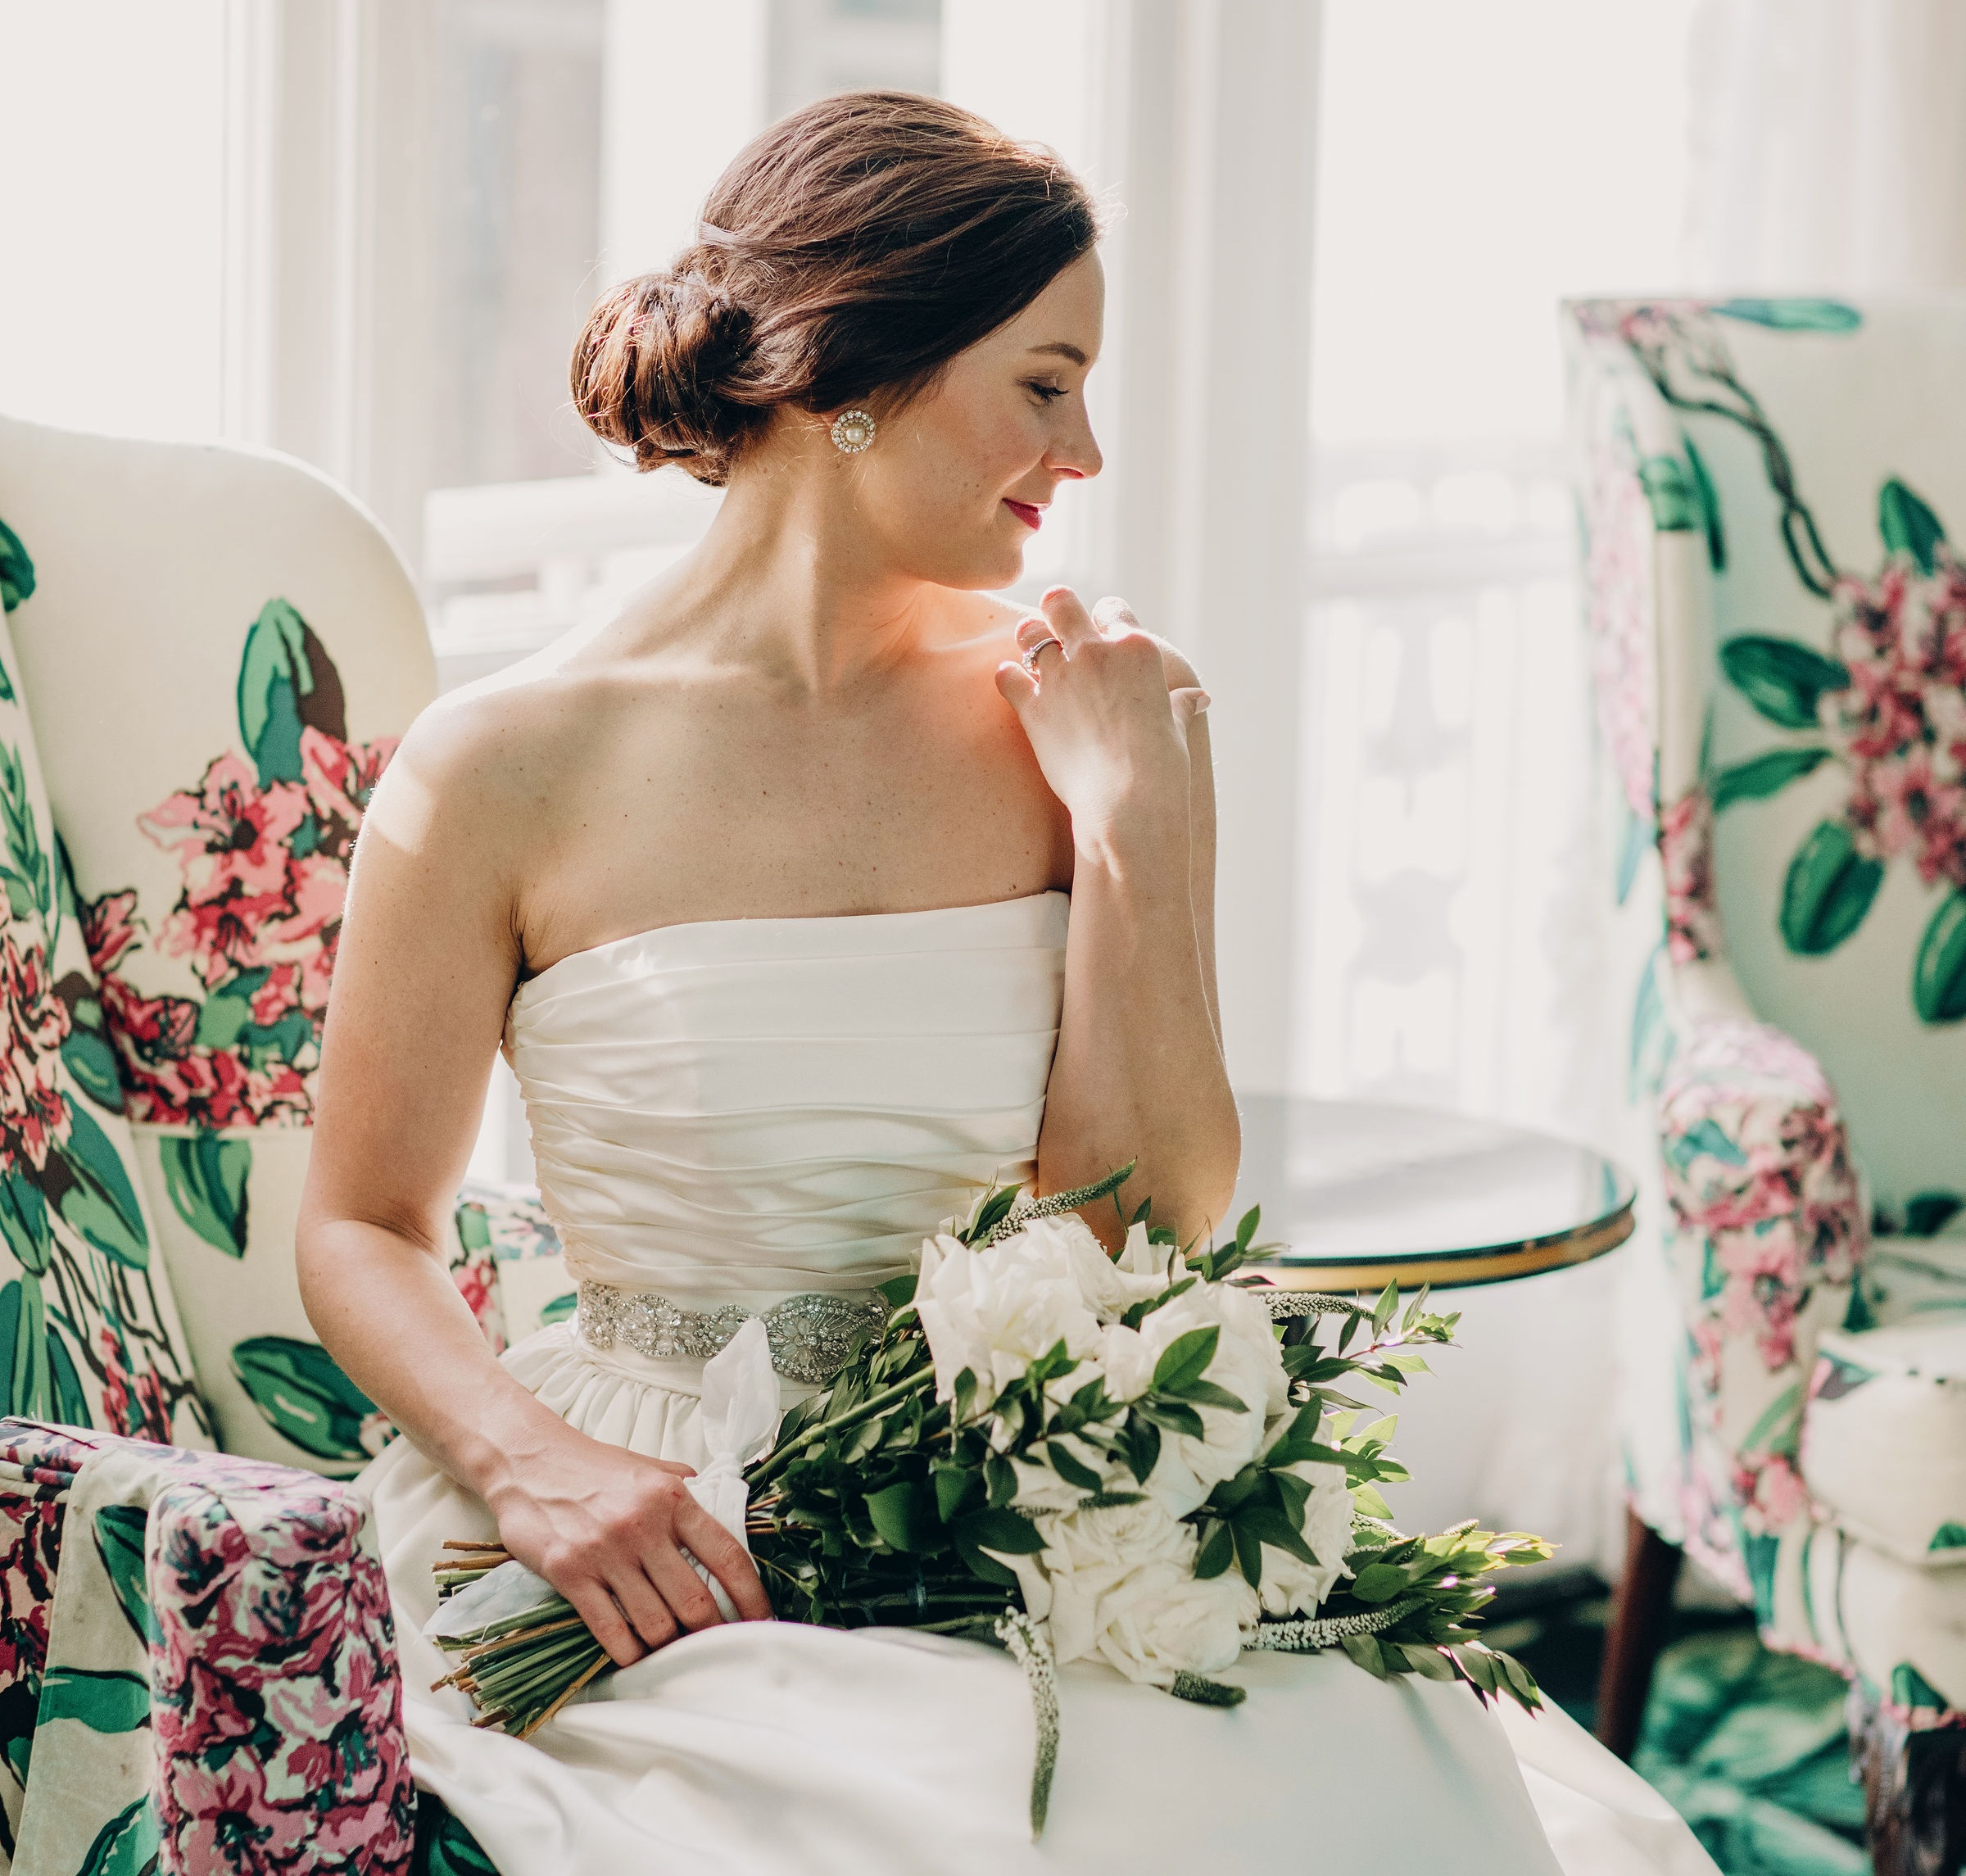 The Greenbrier was the perfect site for these breathtaking portraits of Bryn in her gown prior to her wedding day. Her best friend, and bridesmaid, captured the light and beauty of this happy bride amongst the vibrant colors and brilliant patterns present throughout the resort.